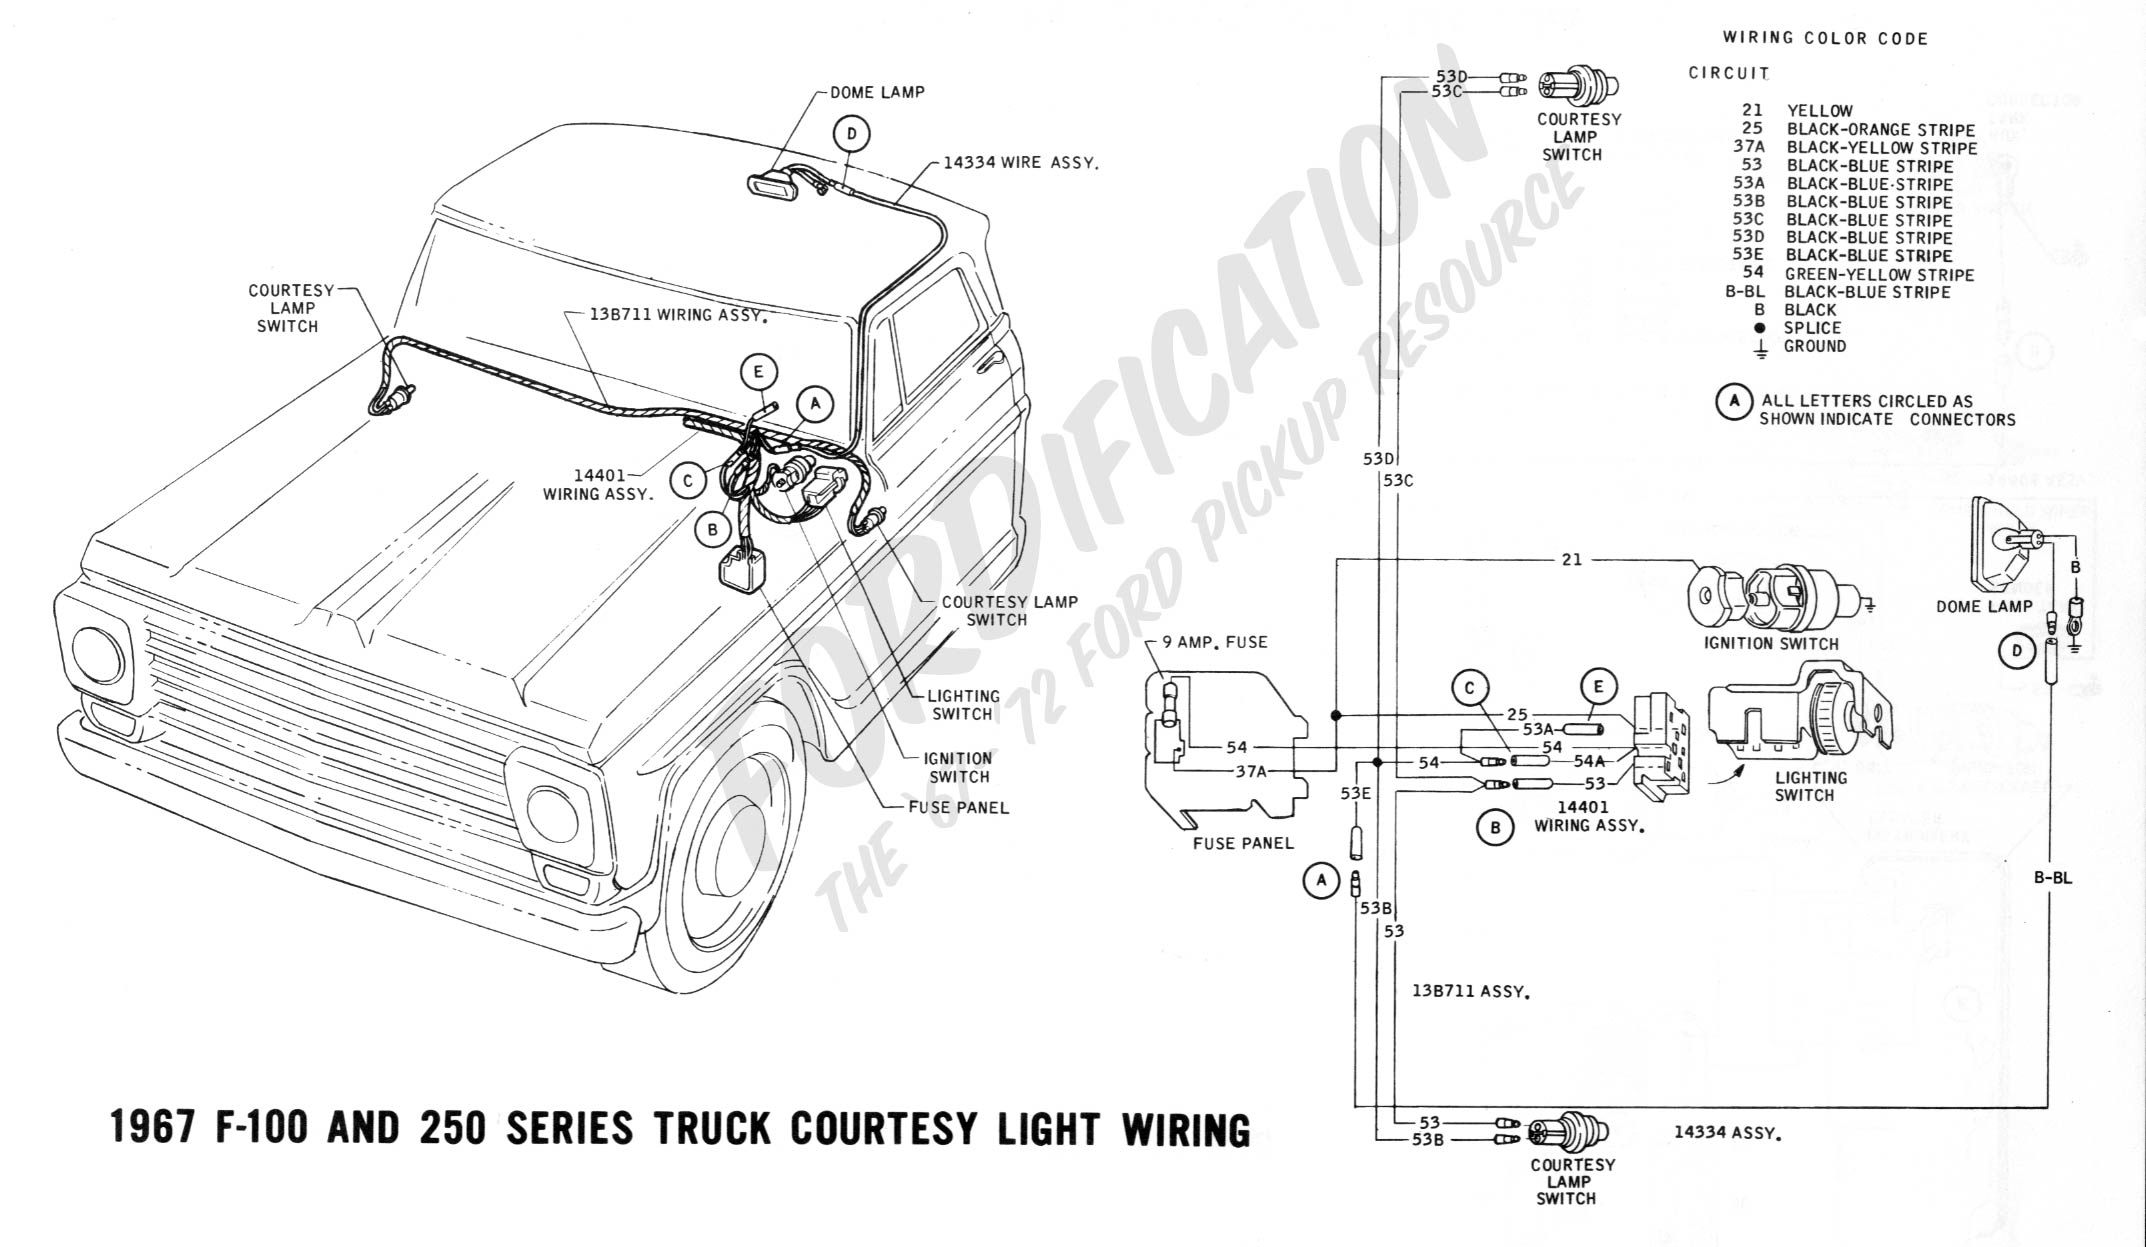 wiring 1967courtesylight ford truck technical drawings and schematics section h wiring 78 ford ranchero wiring diagram at creativeand.co